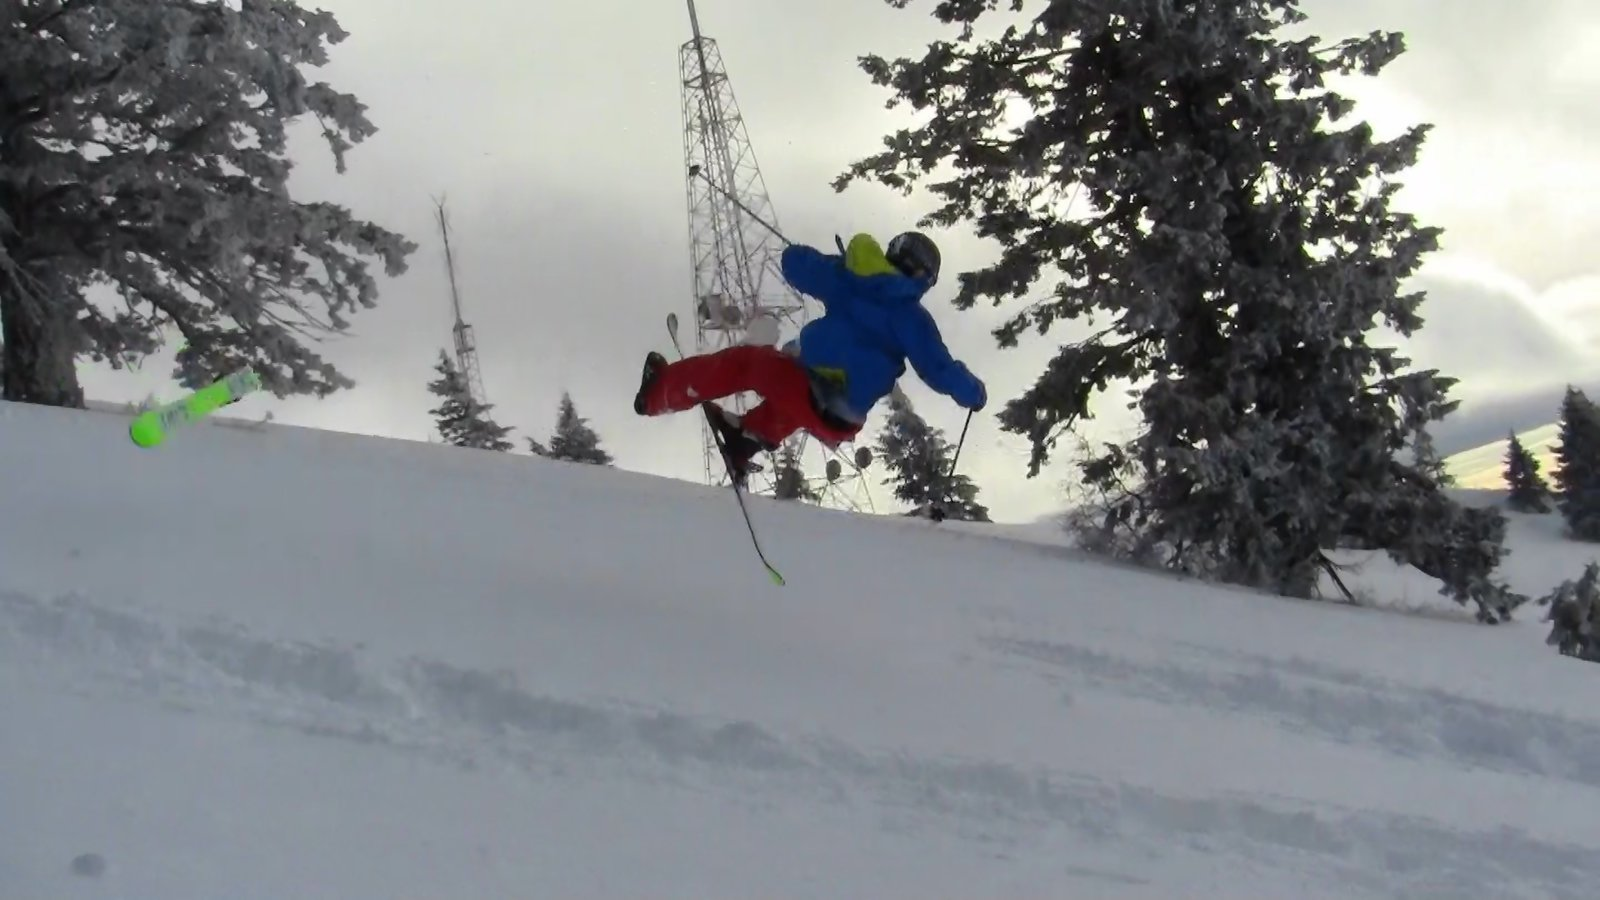 almost landed it